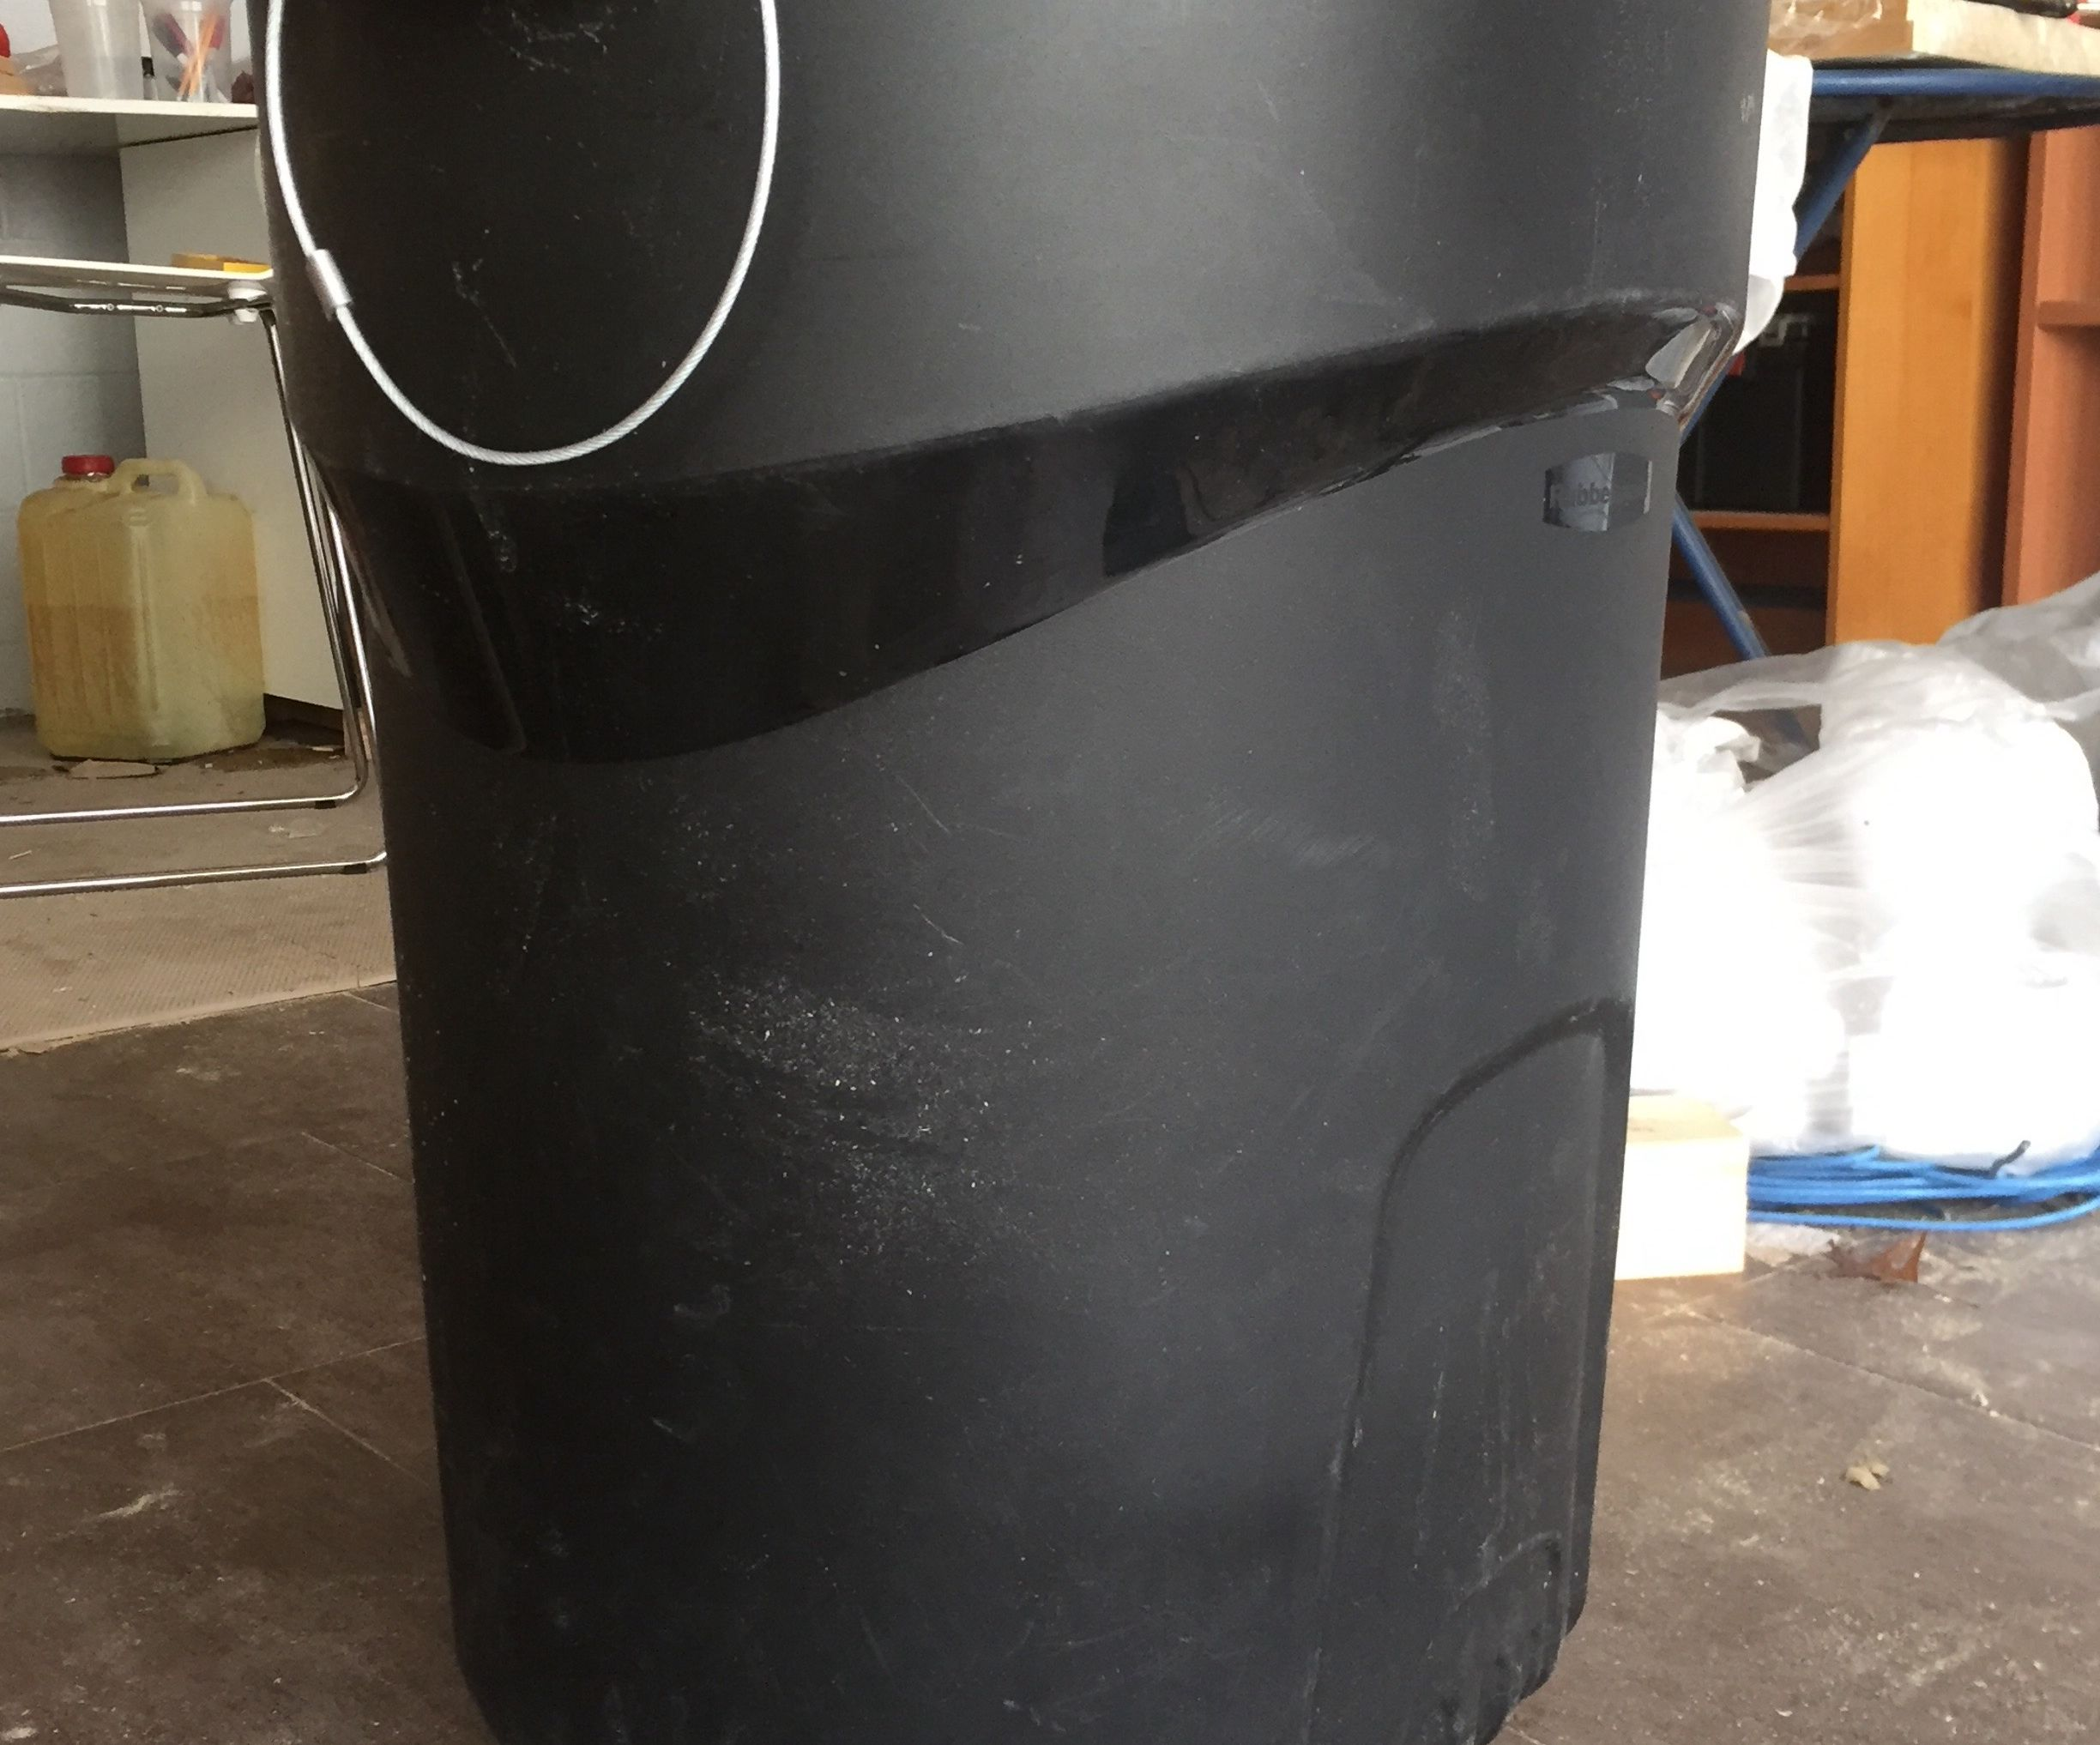 $5 Garbage Can Improvements